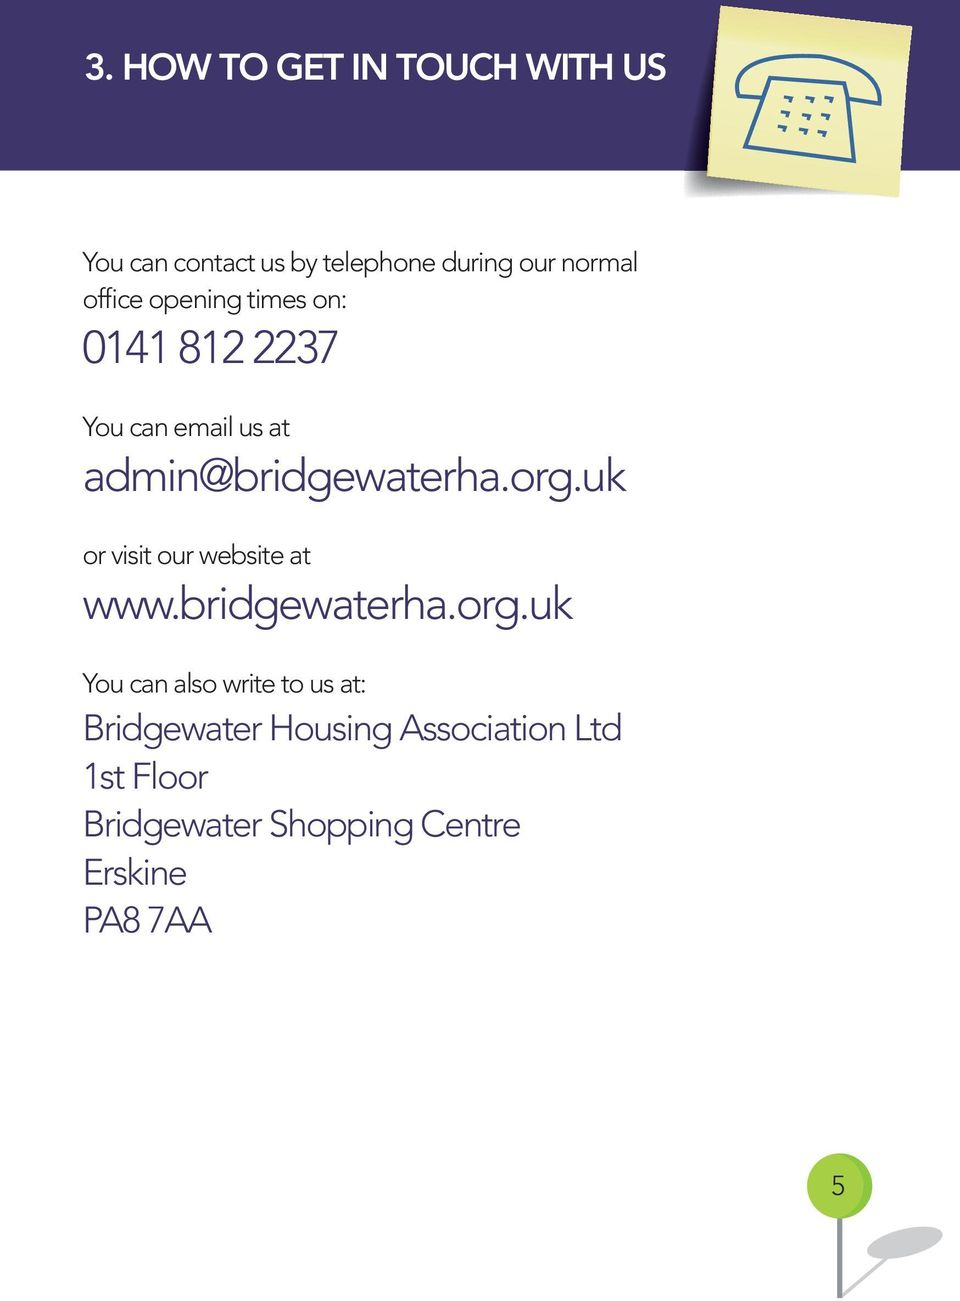 uk or visit our website at www.bridgewaterha.org.